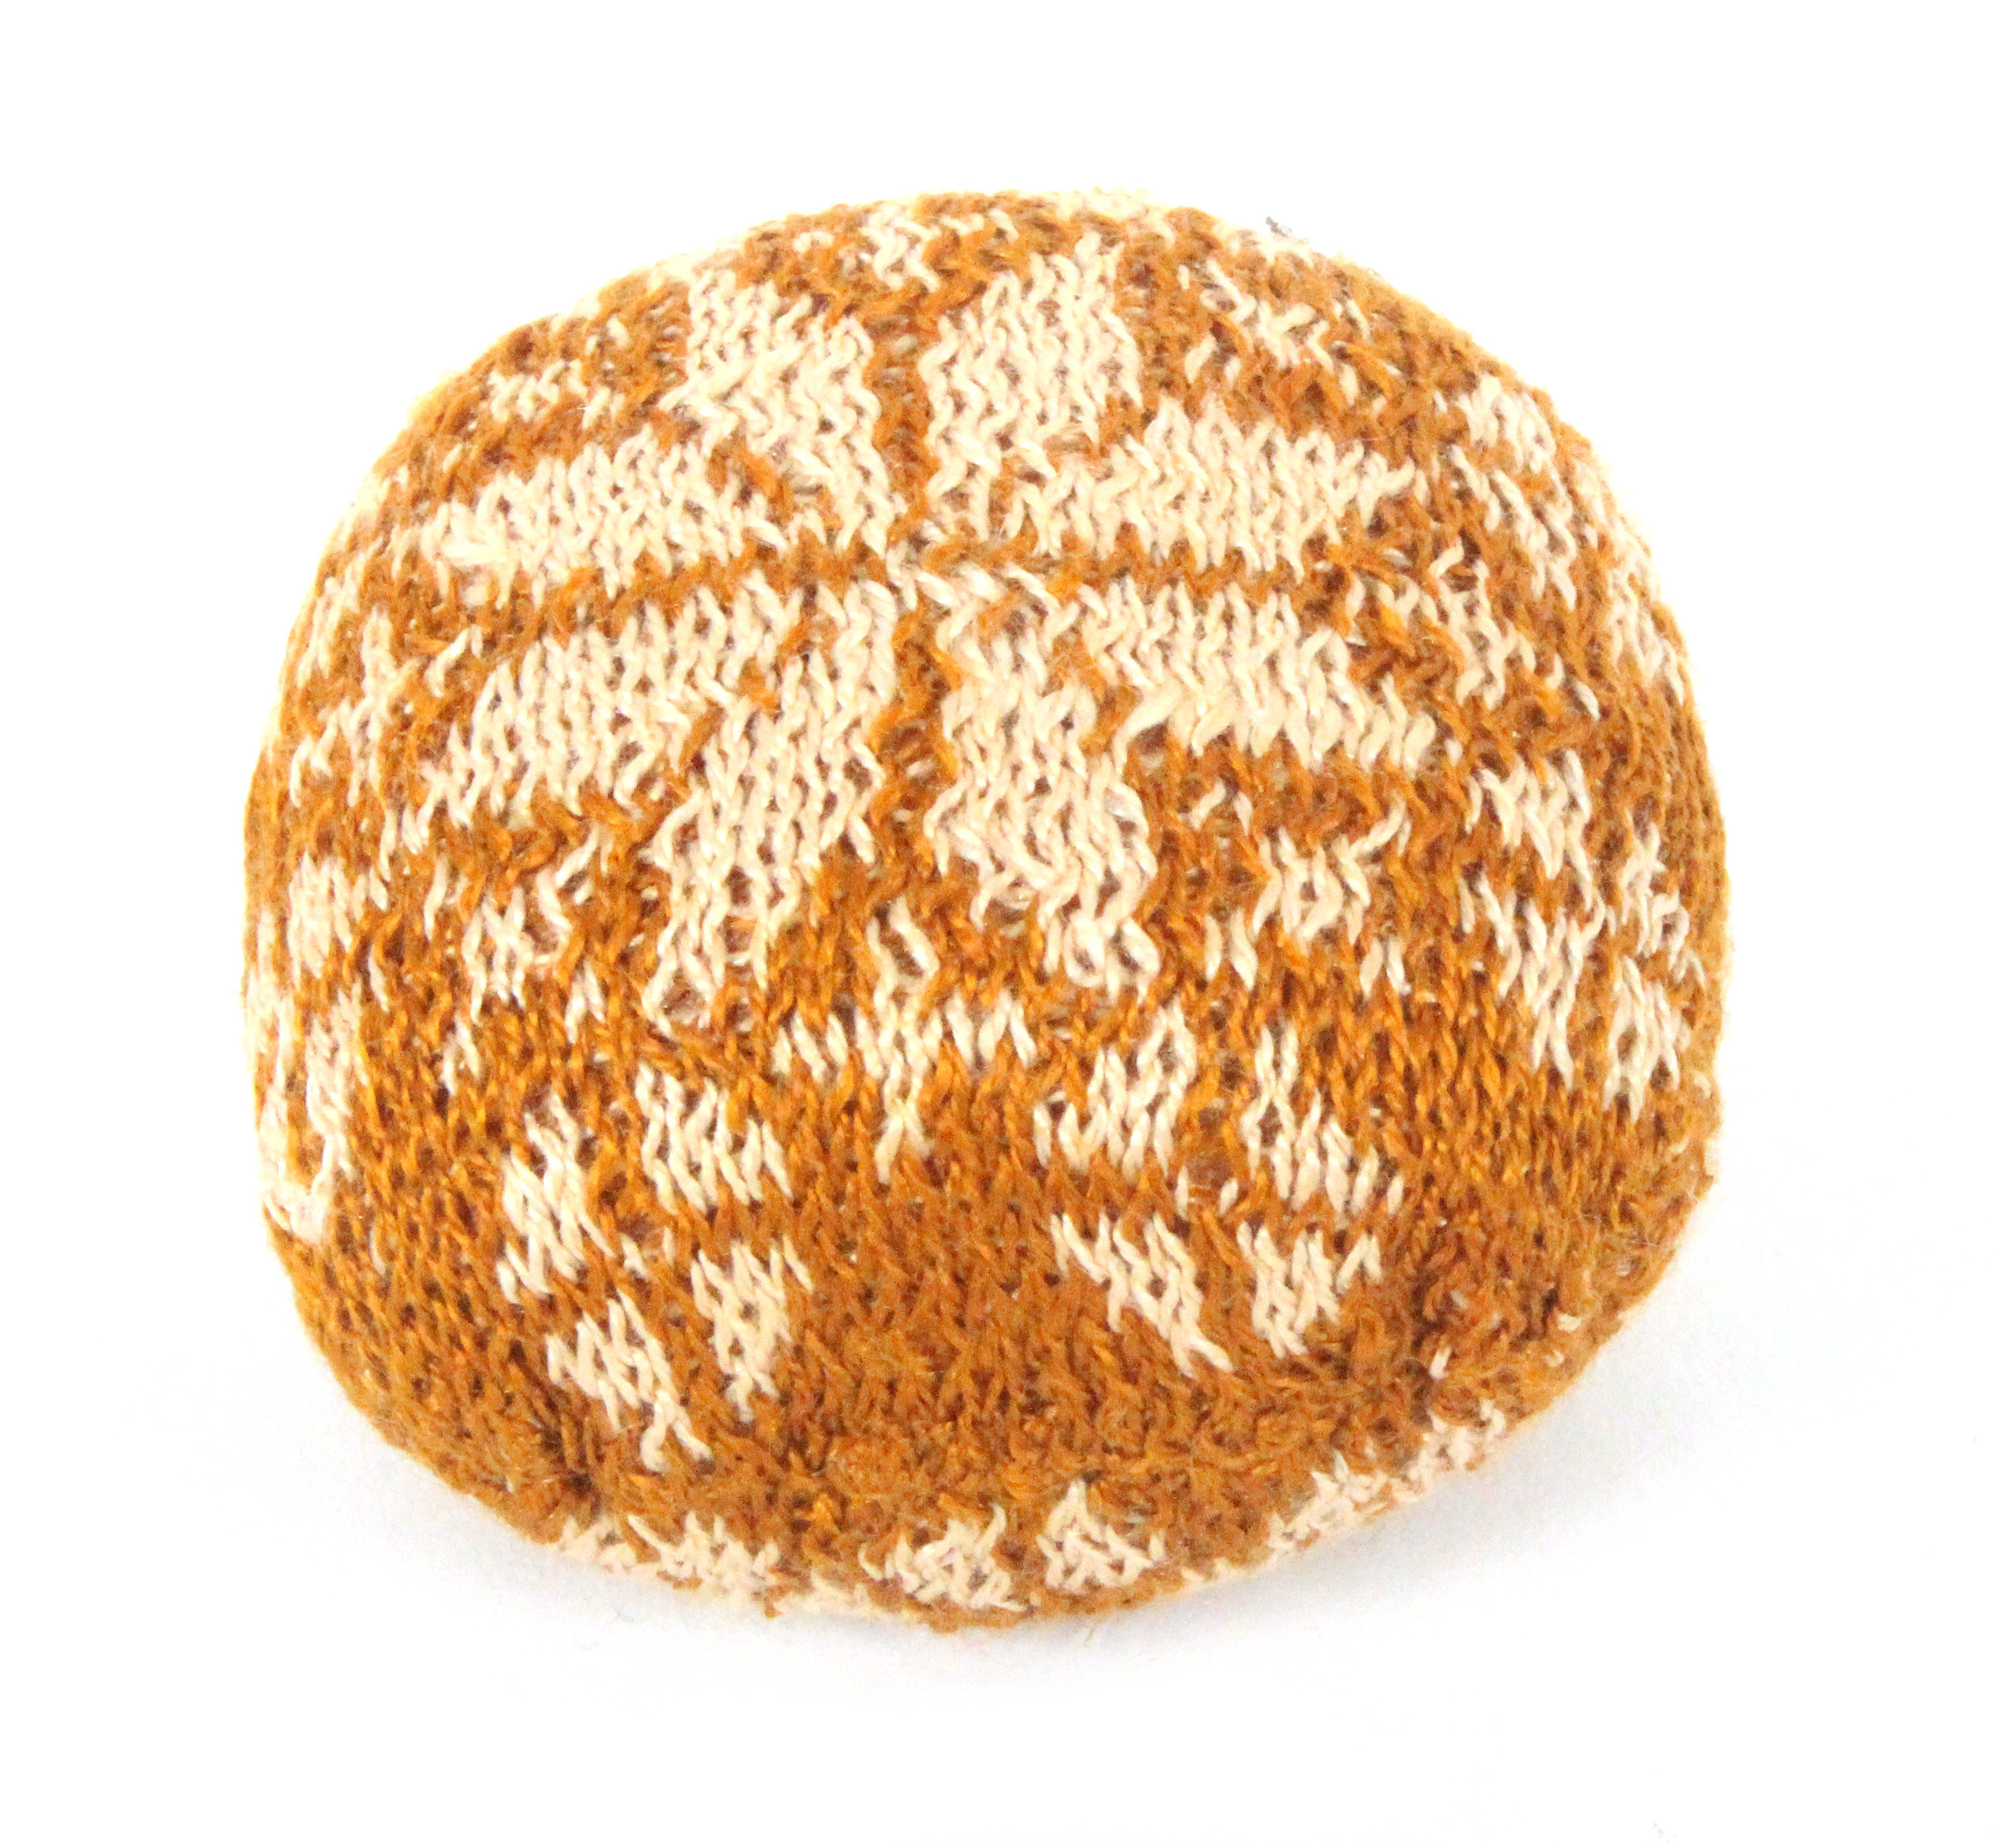 A late 18th Century/early 19th Century knitted pin 'ball', of near square form worked with a